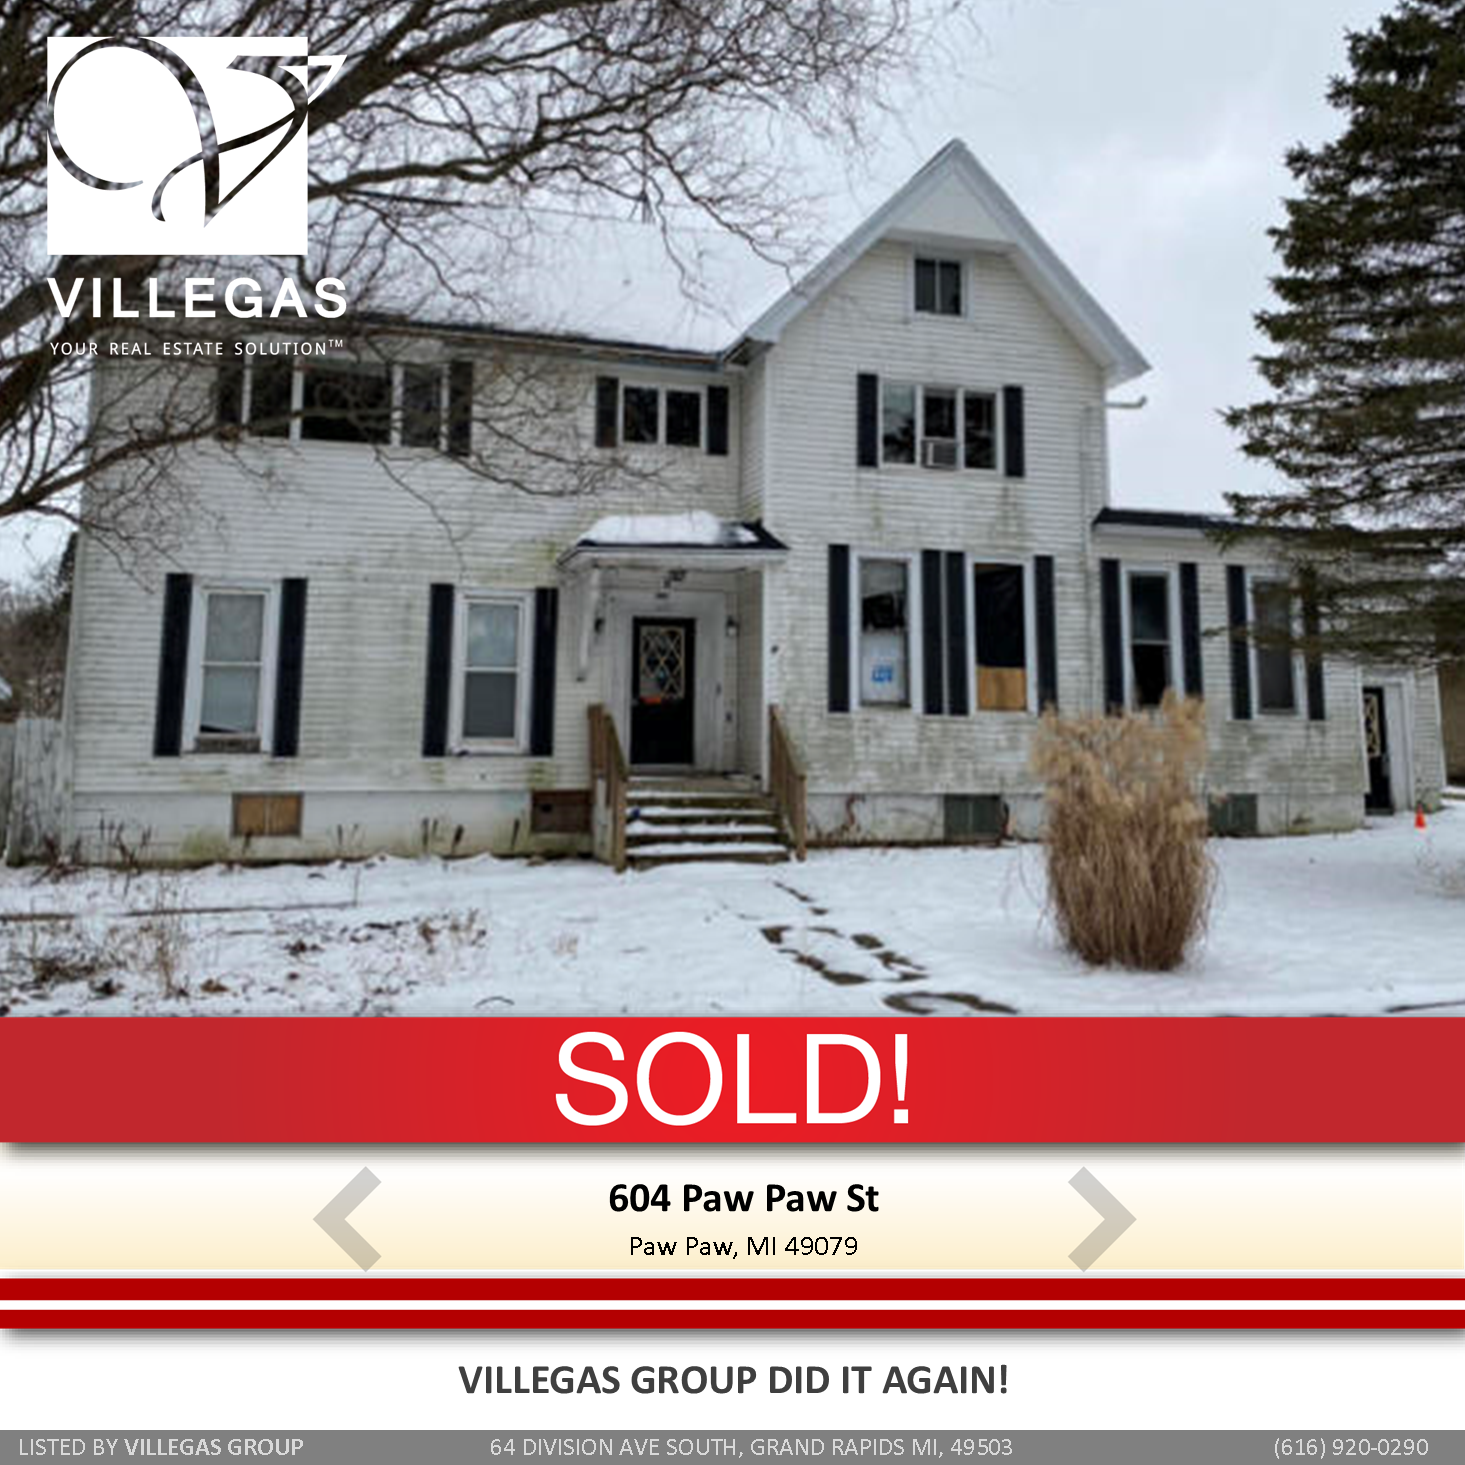 SOLD by Villegas Group